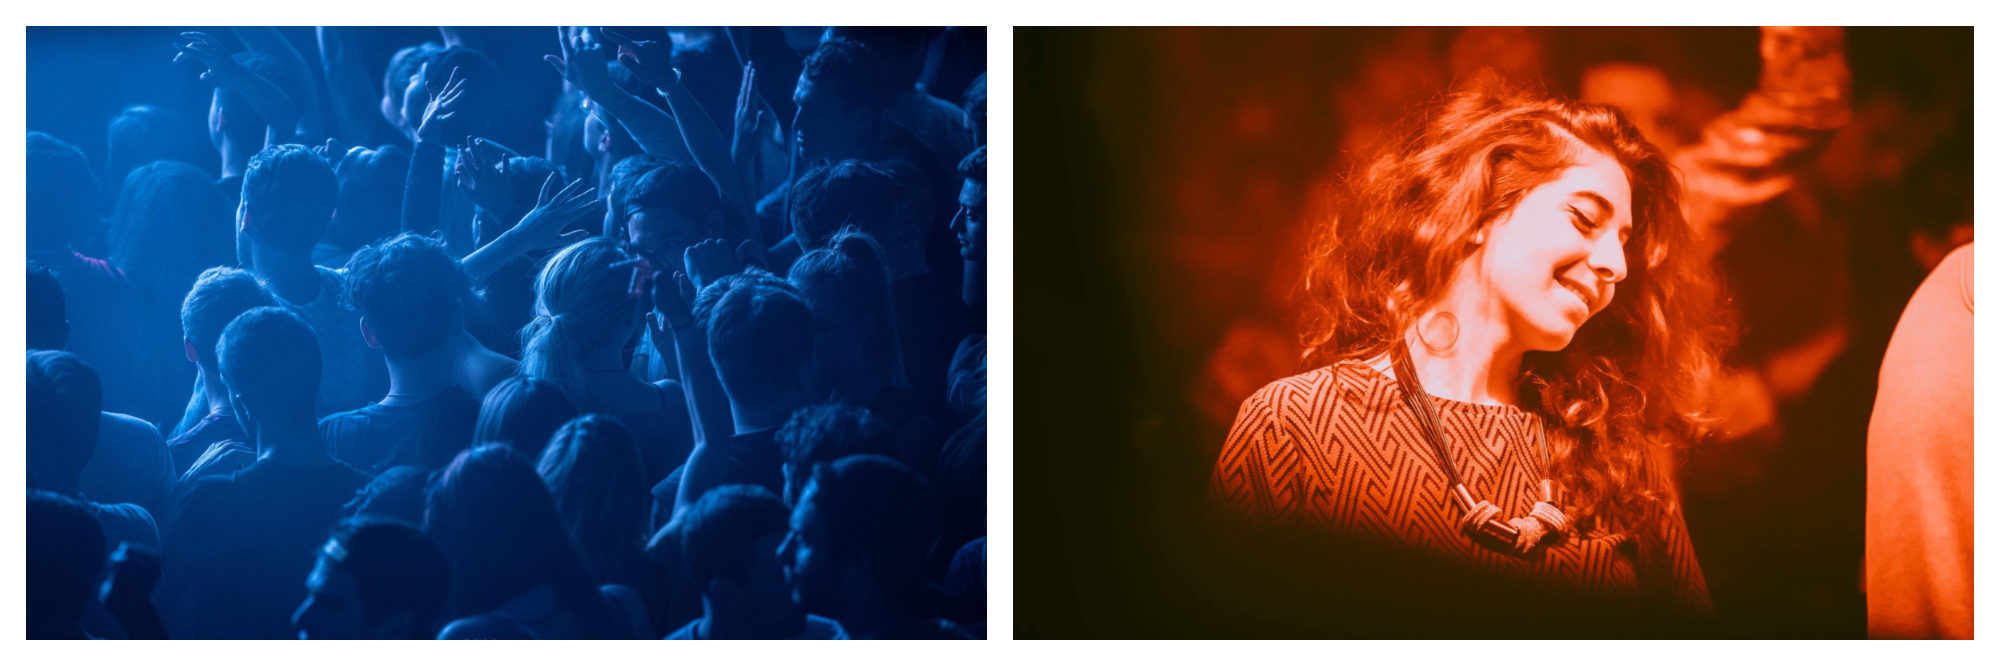 A blue hued image of people dancing with their hands in the air at a night club (left). A red hued image of a woman dancing with her eyes closed at a nightclub (right).